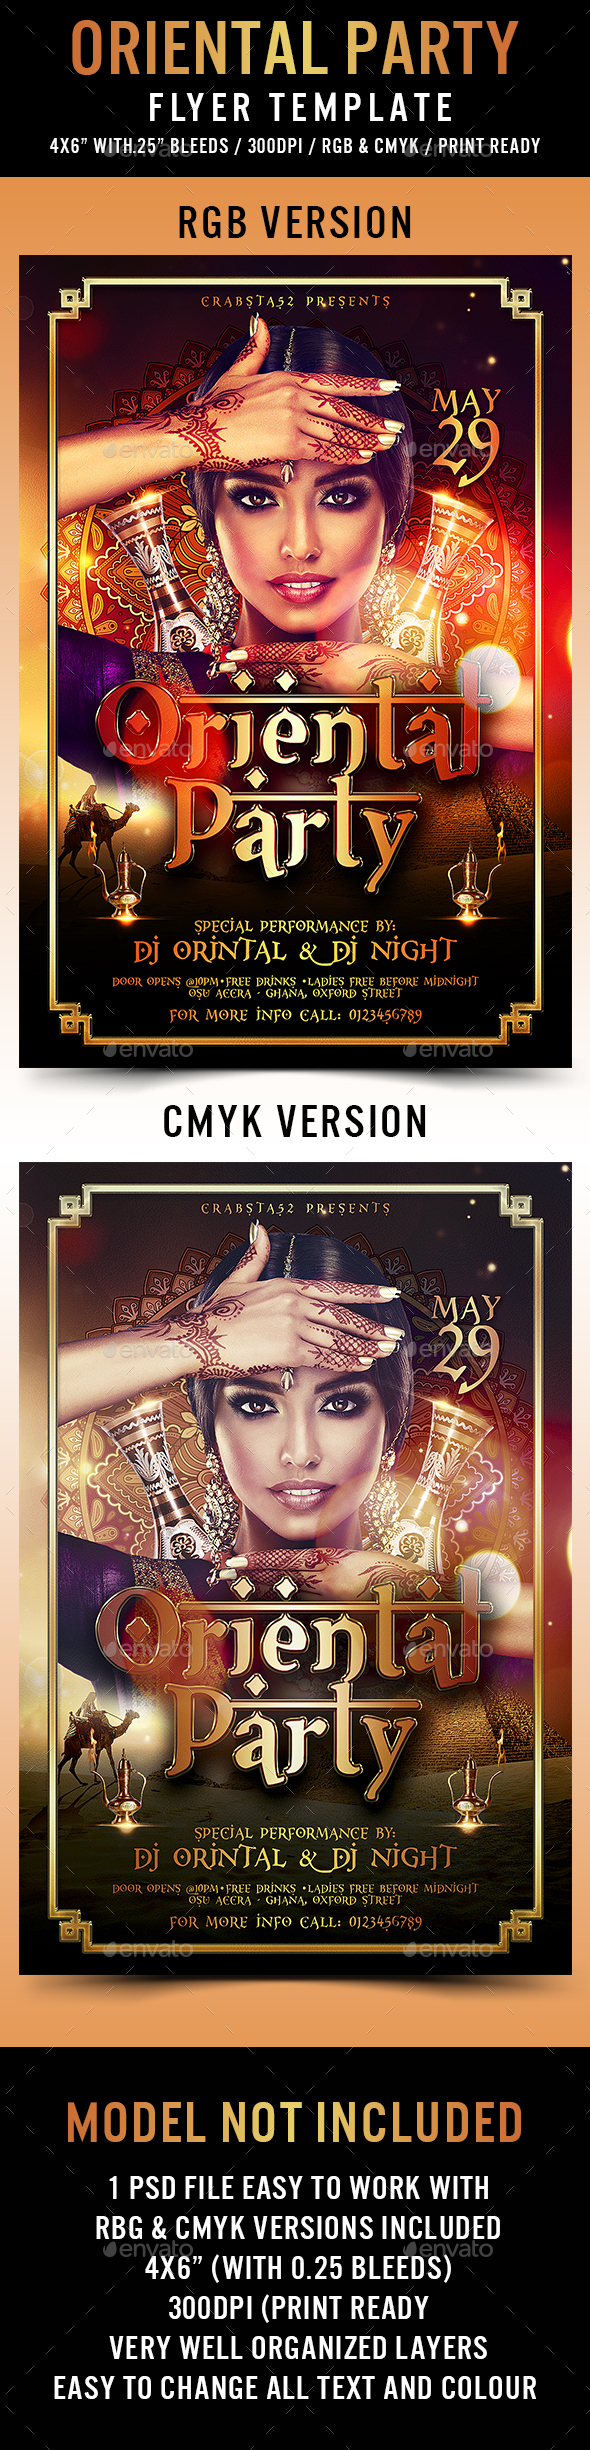 Oriental Party Flyer Template - Flyers Print Templates